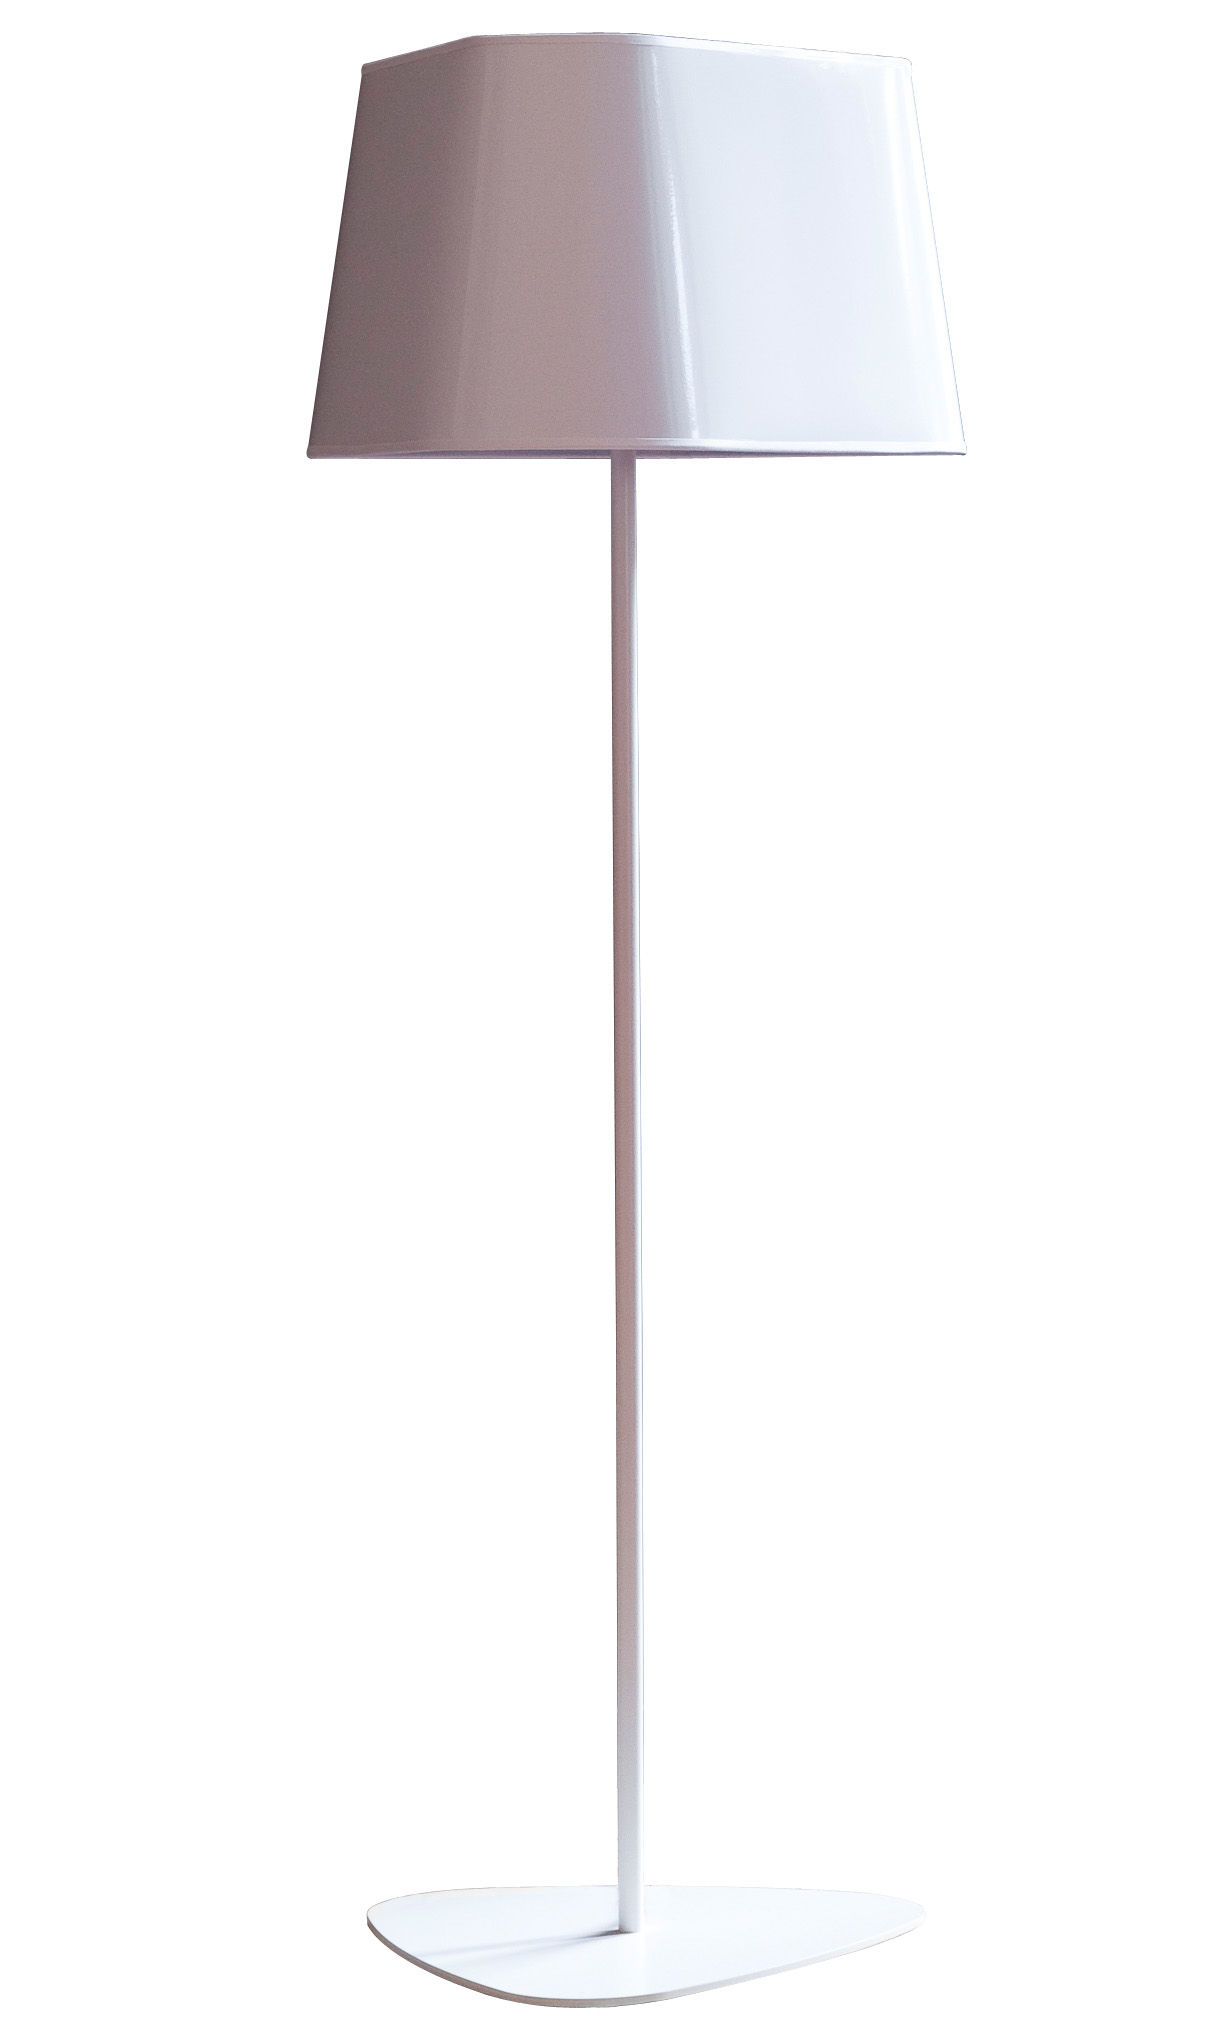 Lighting - Floor lamps - Grand Nuage Floor lamp by Designheure - H 122 cm - White fabric - Cotton canvas, Lacquered steel